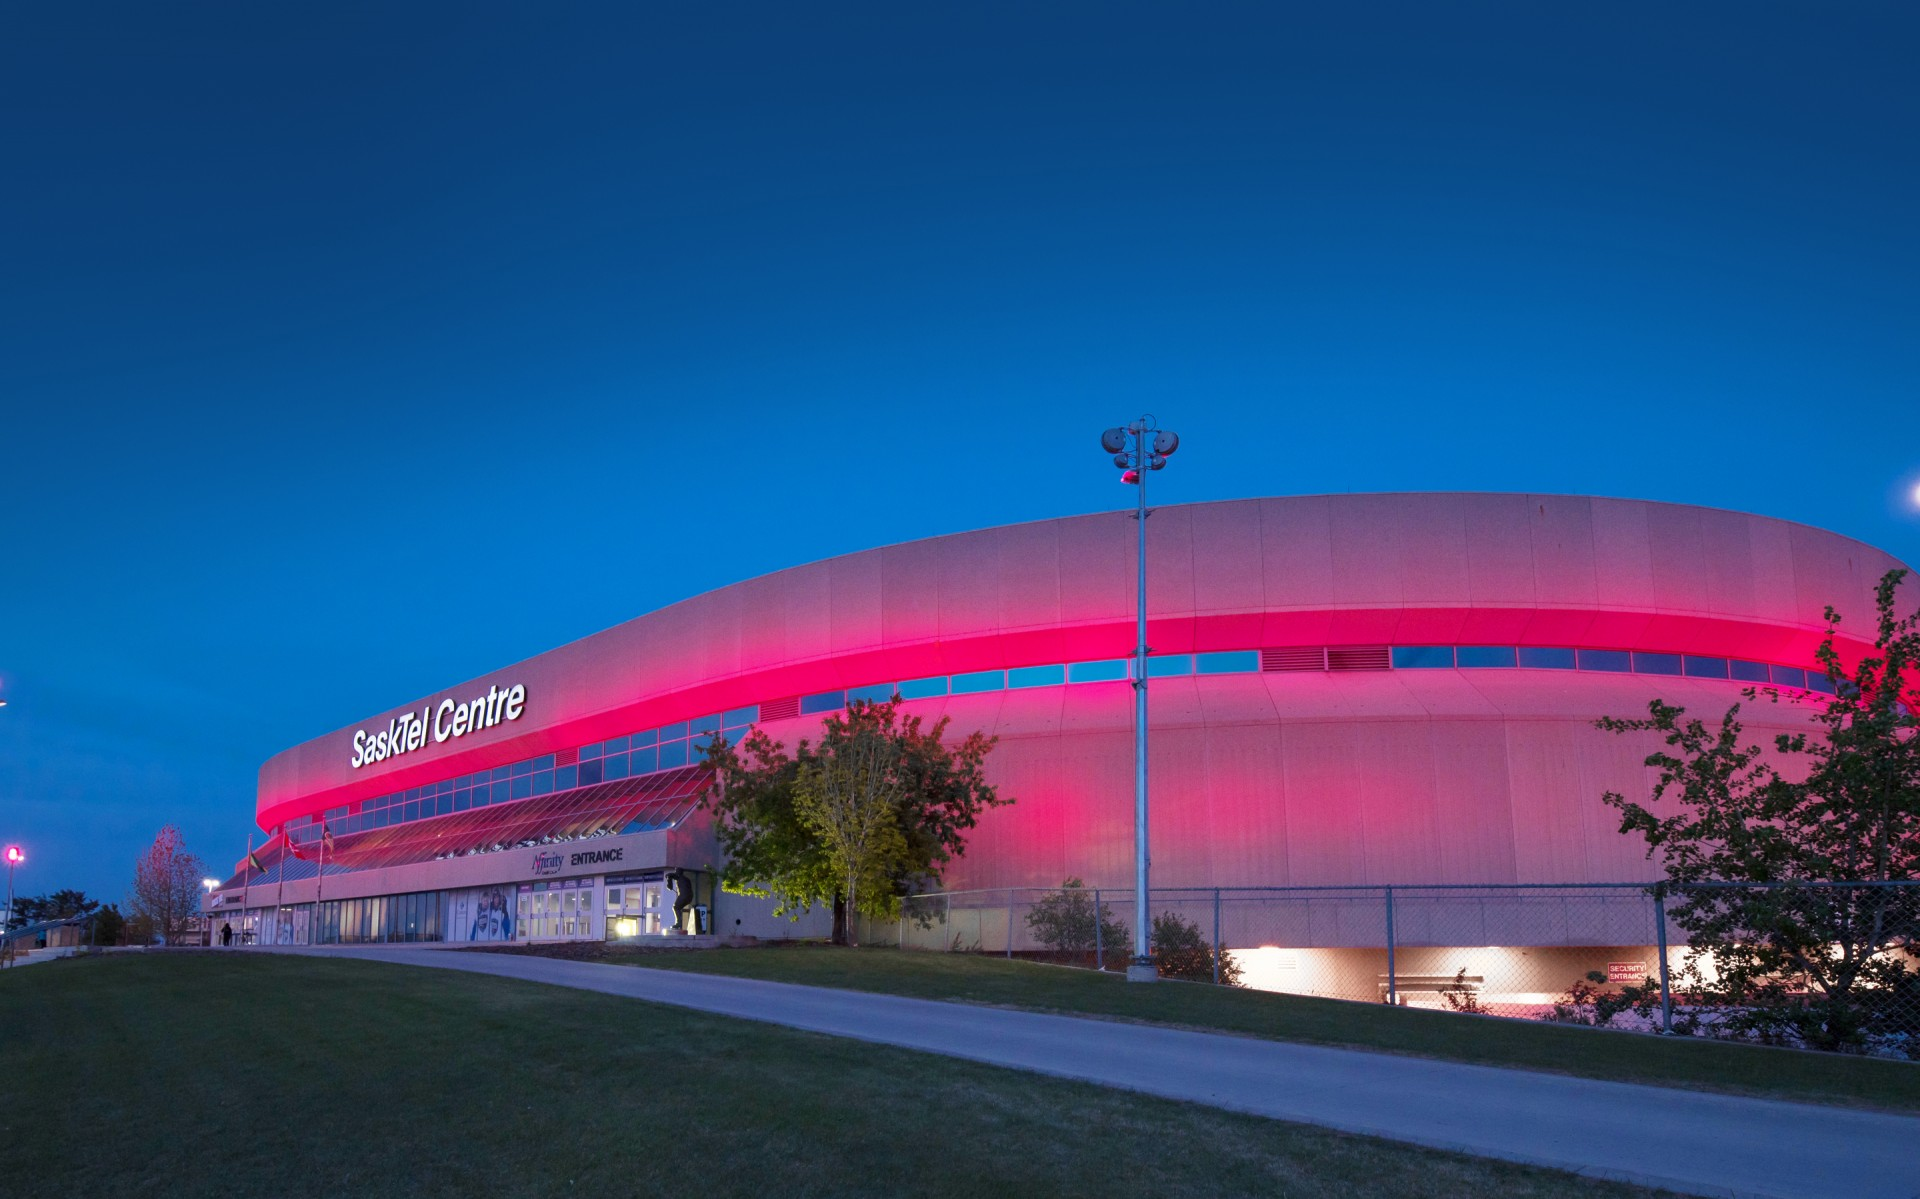 Lumentalk-enabled Lumenbeam Color Changing luminaires were used to floodlight the façade of the building.